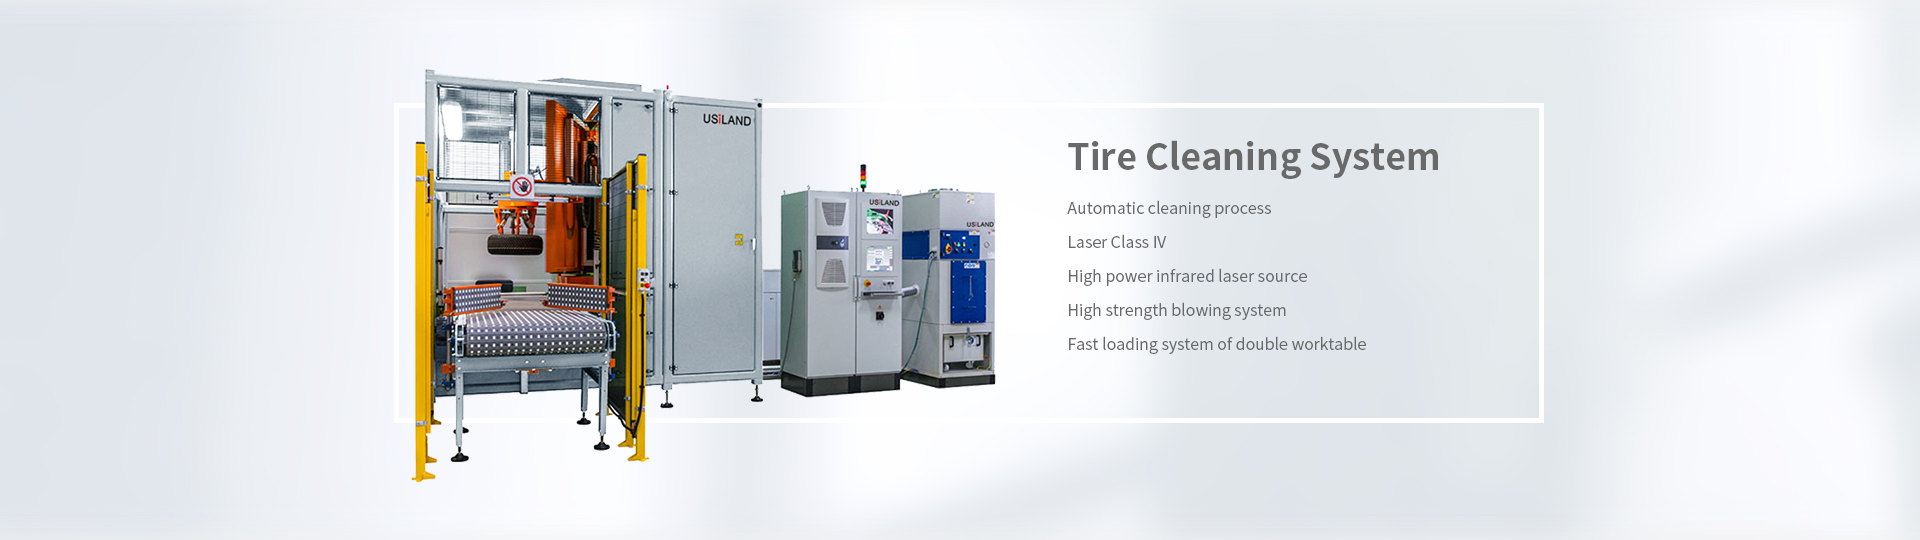 Tire Cleaning System